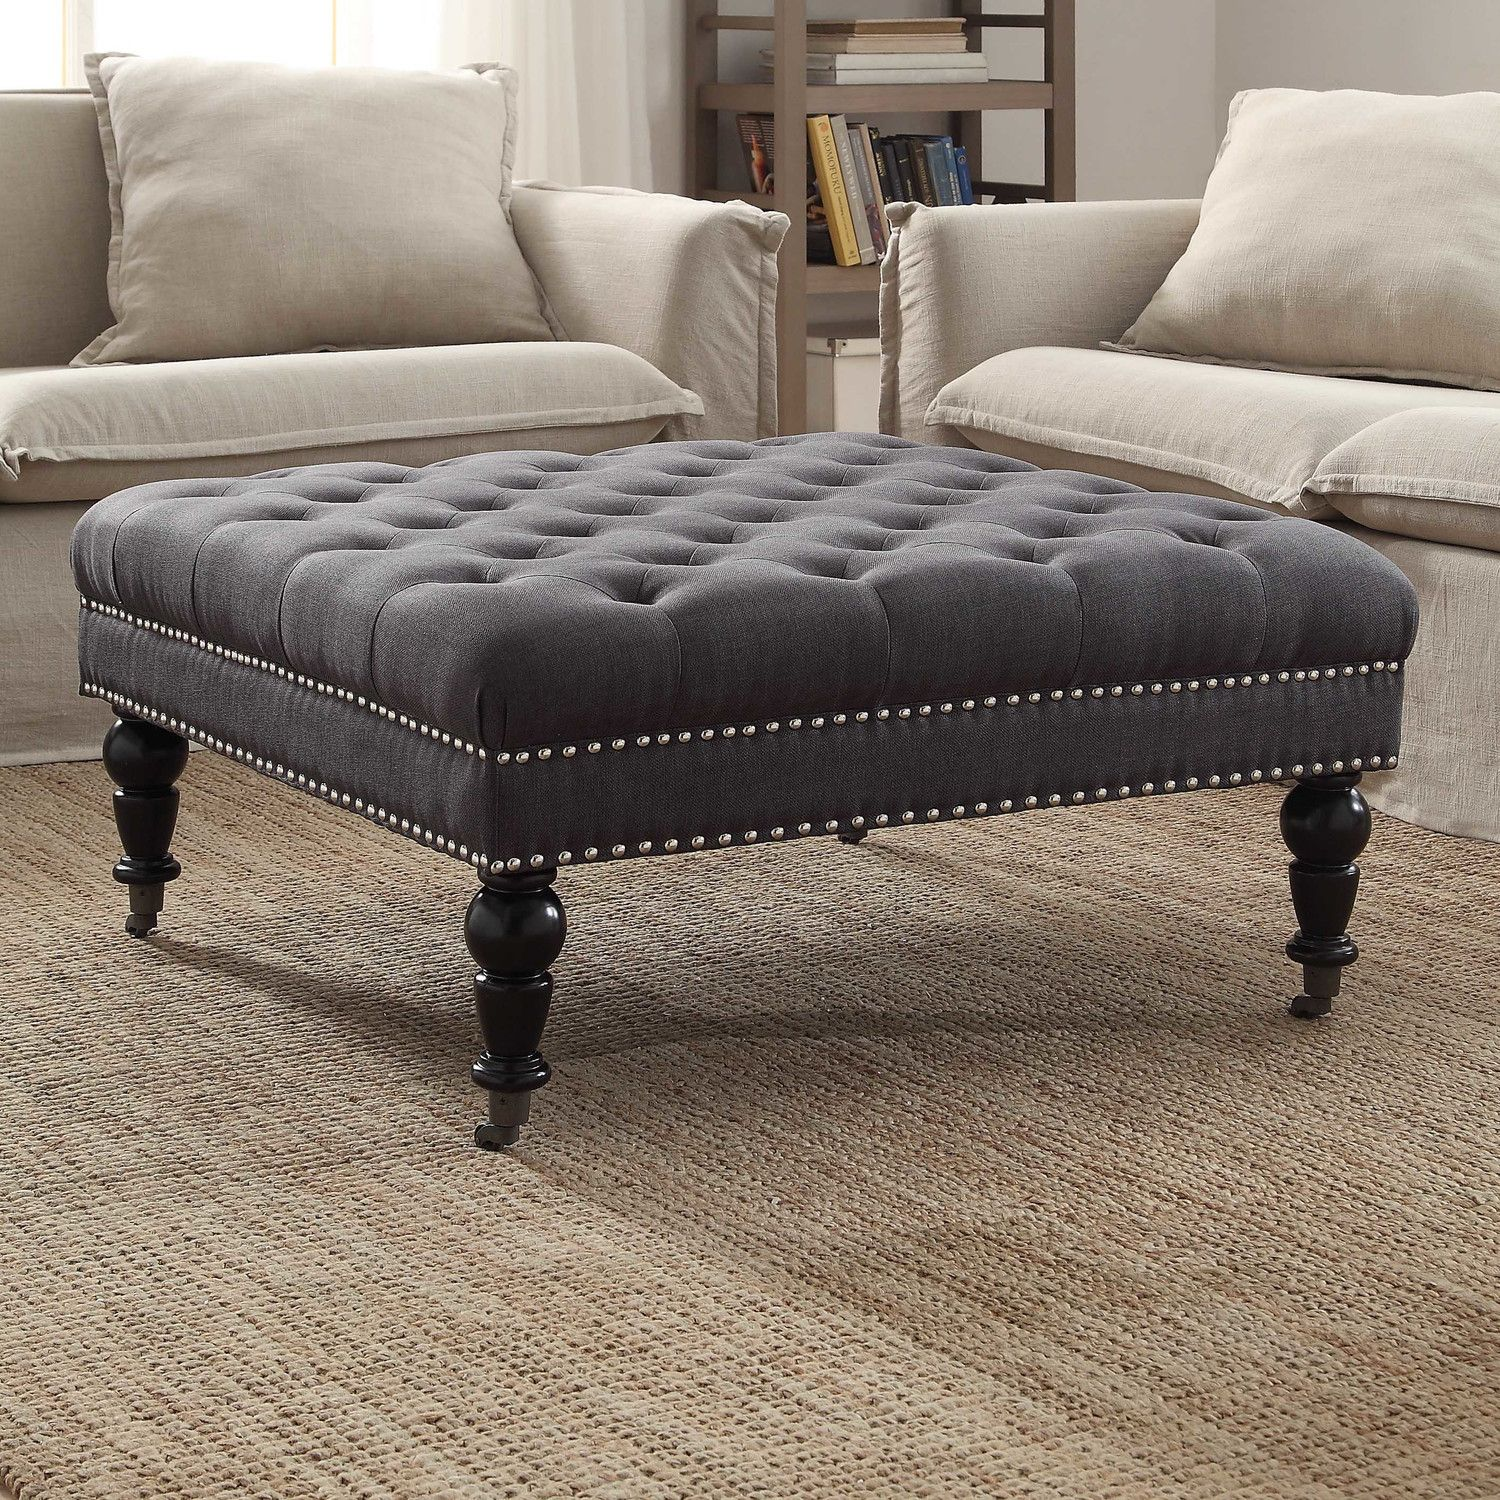 10 Cream Tufted Ottoman Coffee Table Pics In 2020 Leather